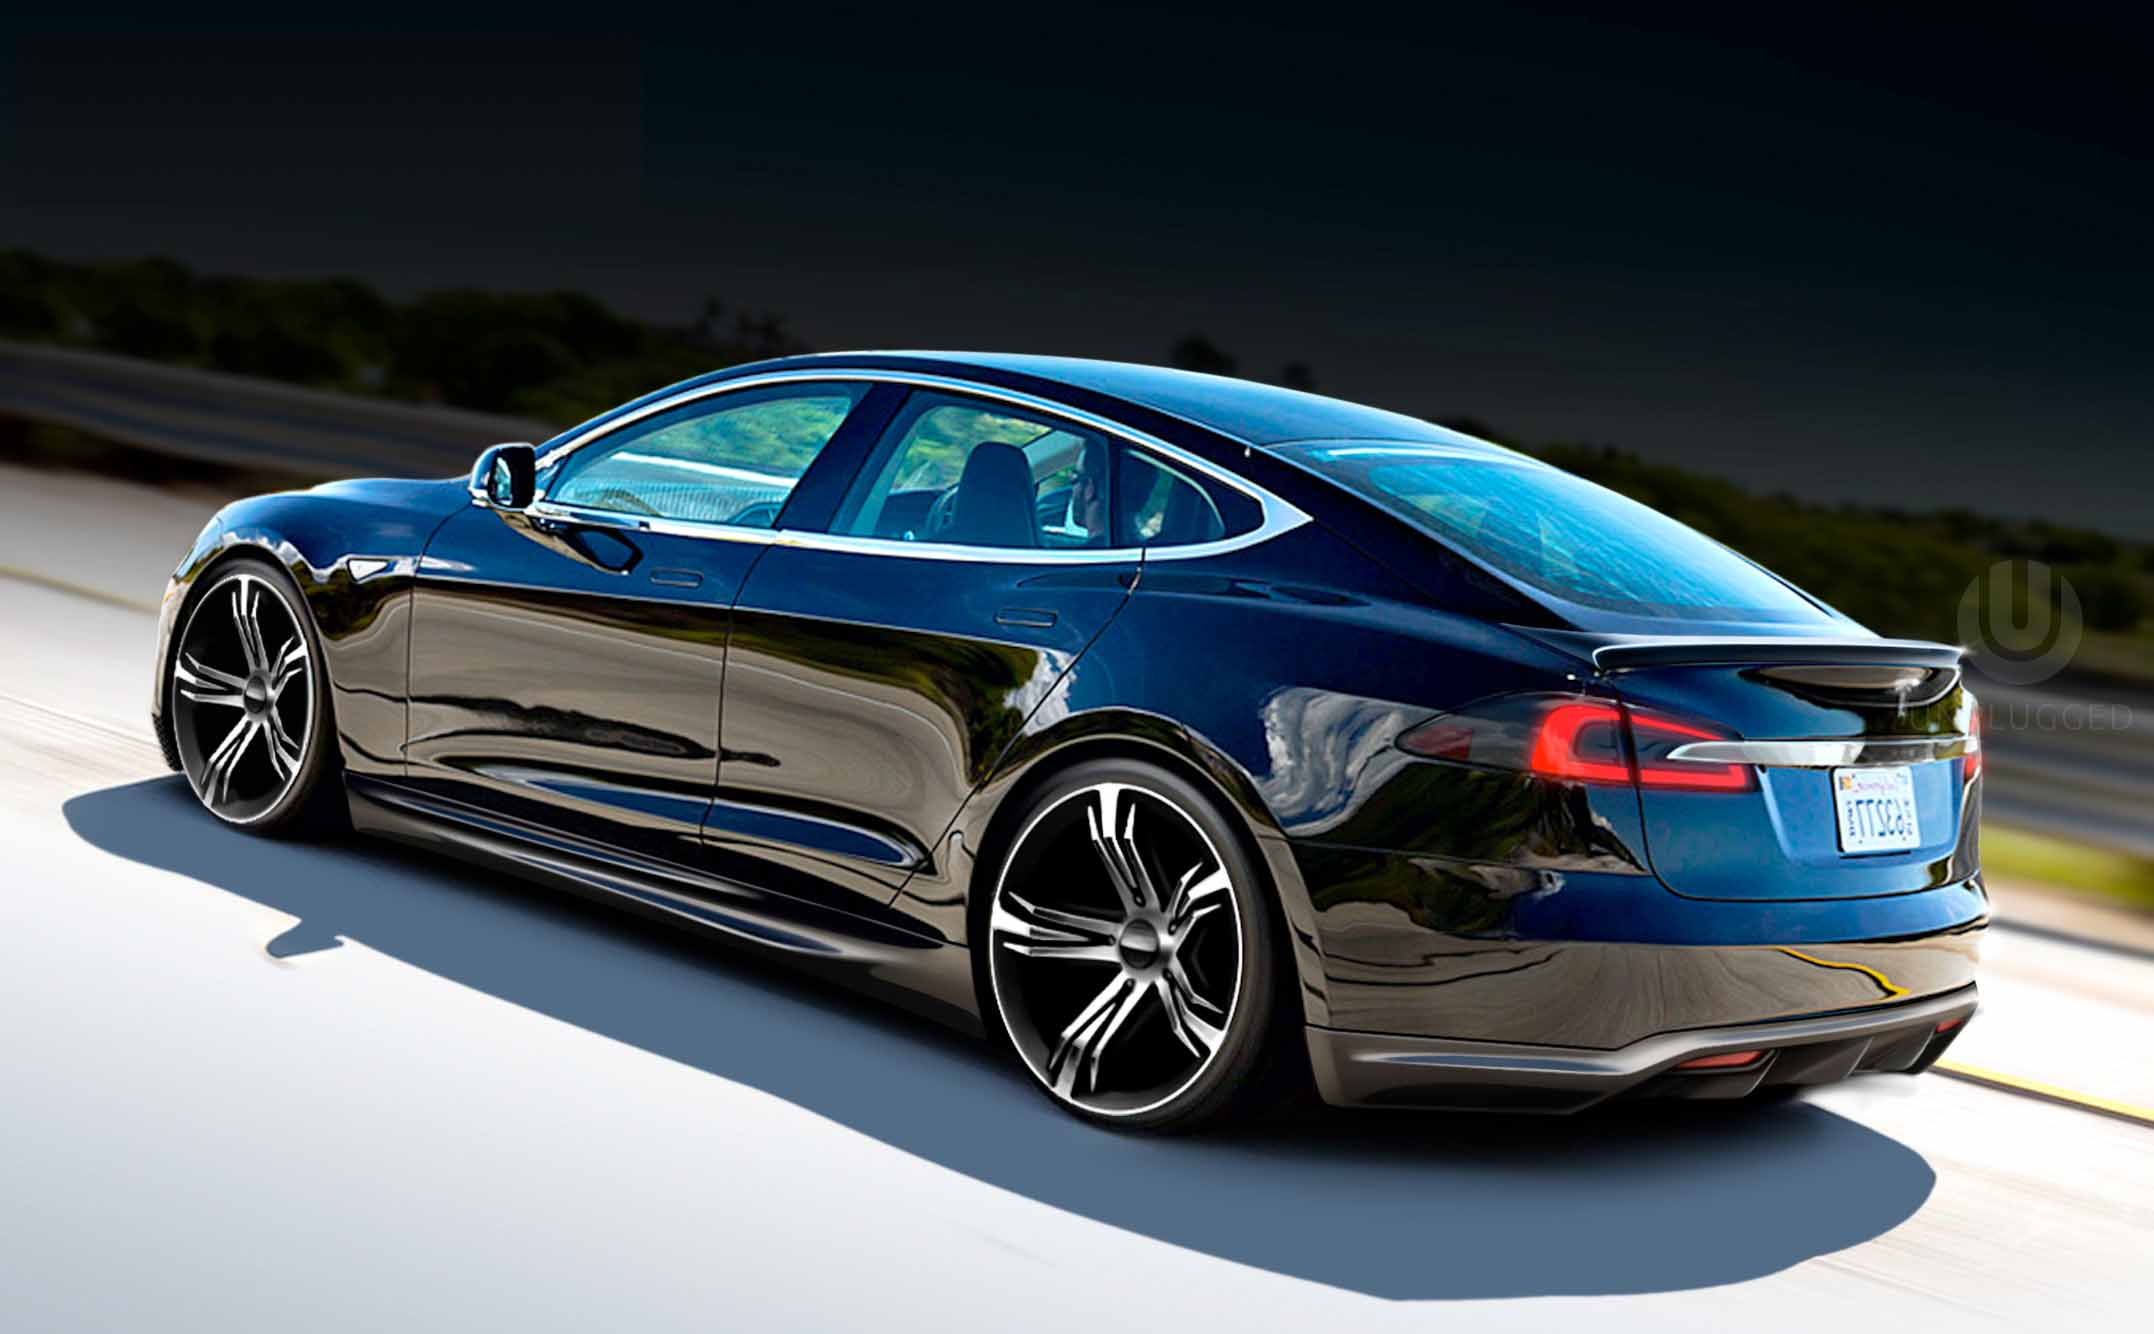 Tesla Model S Wallpapers HD Photos, Wallpapers and other Image